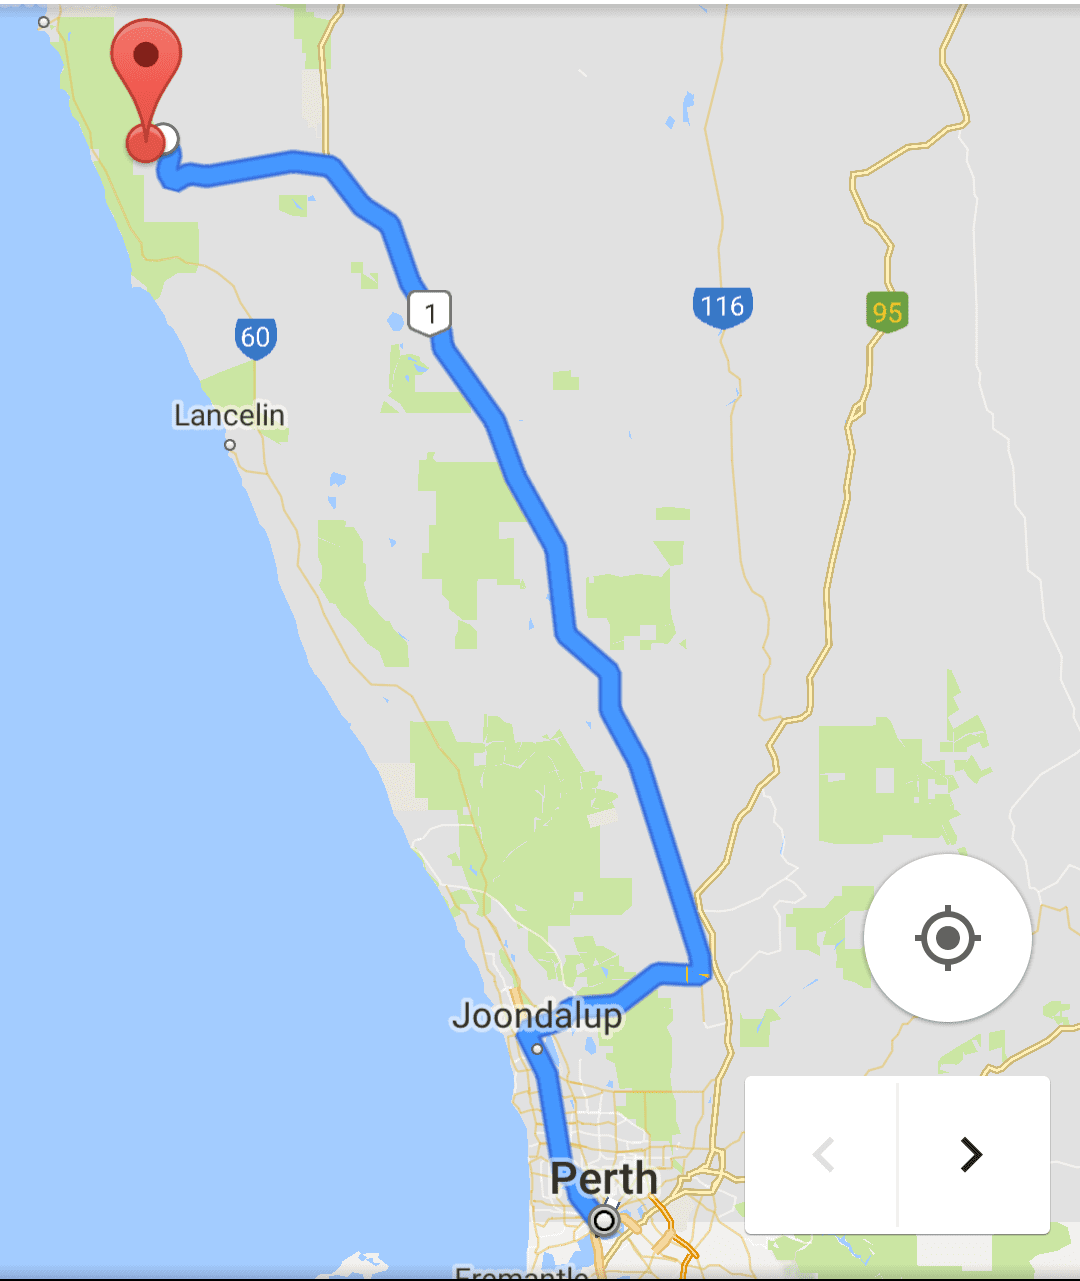 A suggested rout from Perth to The Pinnacles